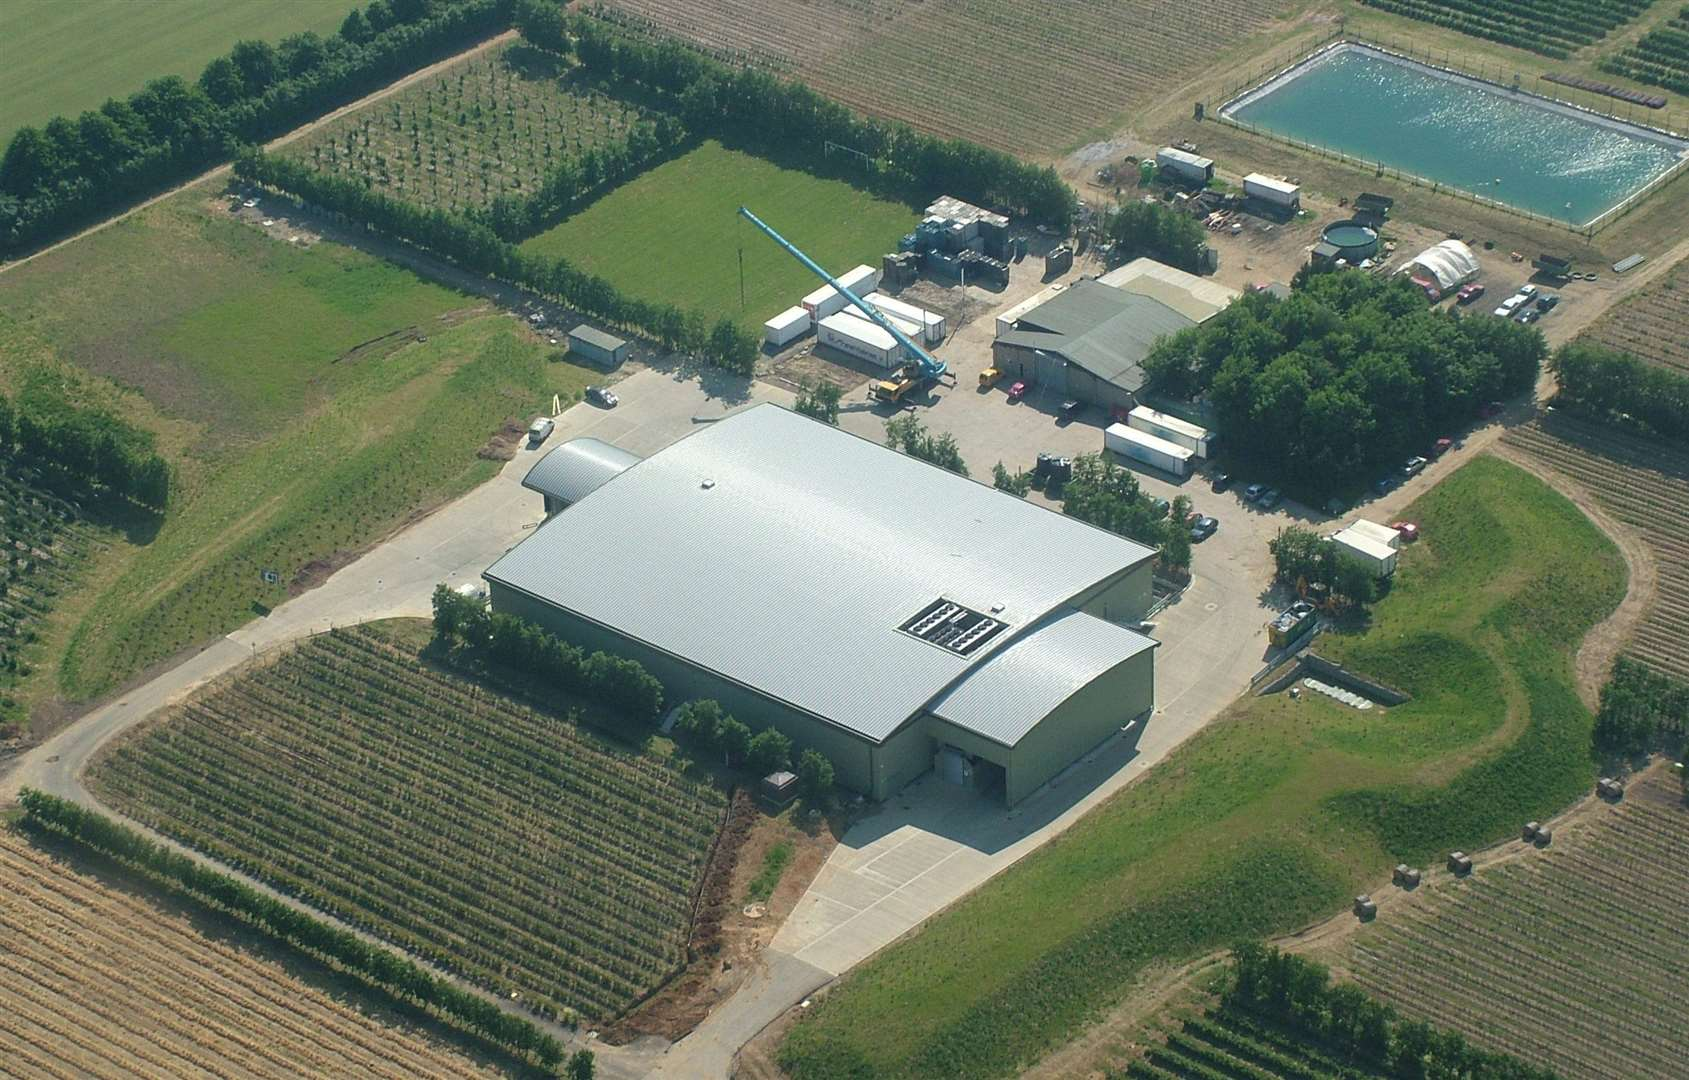 Winterwood Farms in East Sutton, Maidstone, is one of the firms affected by the coronavirus crisis